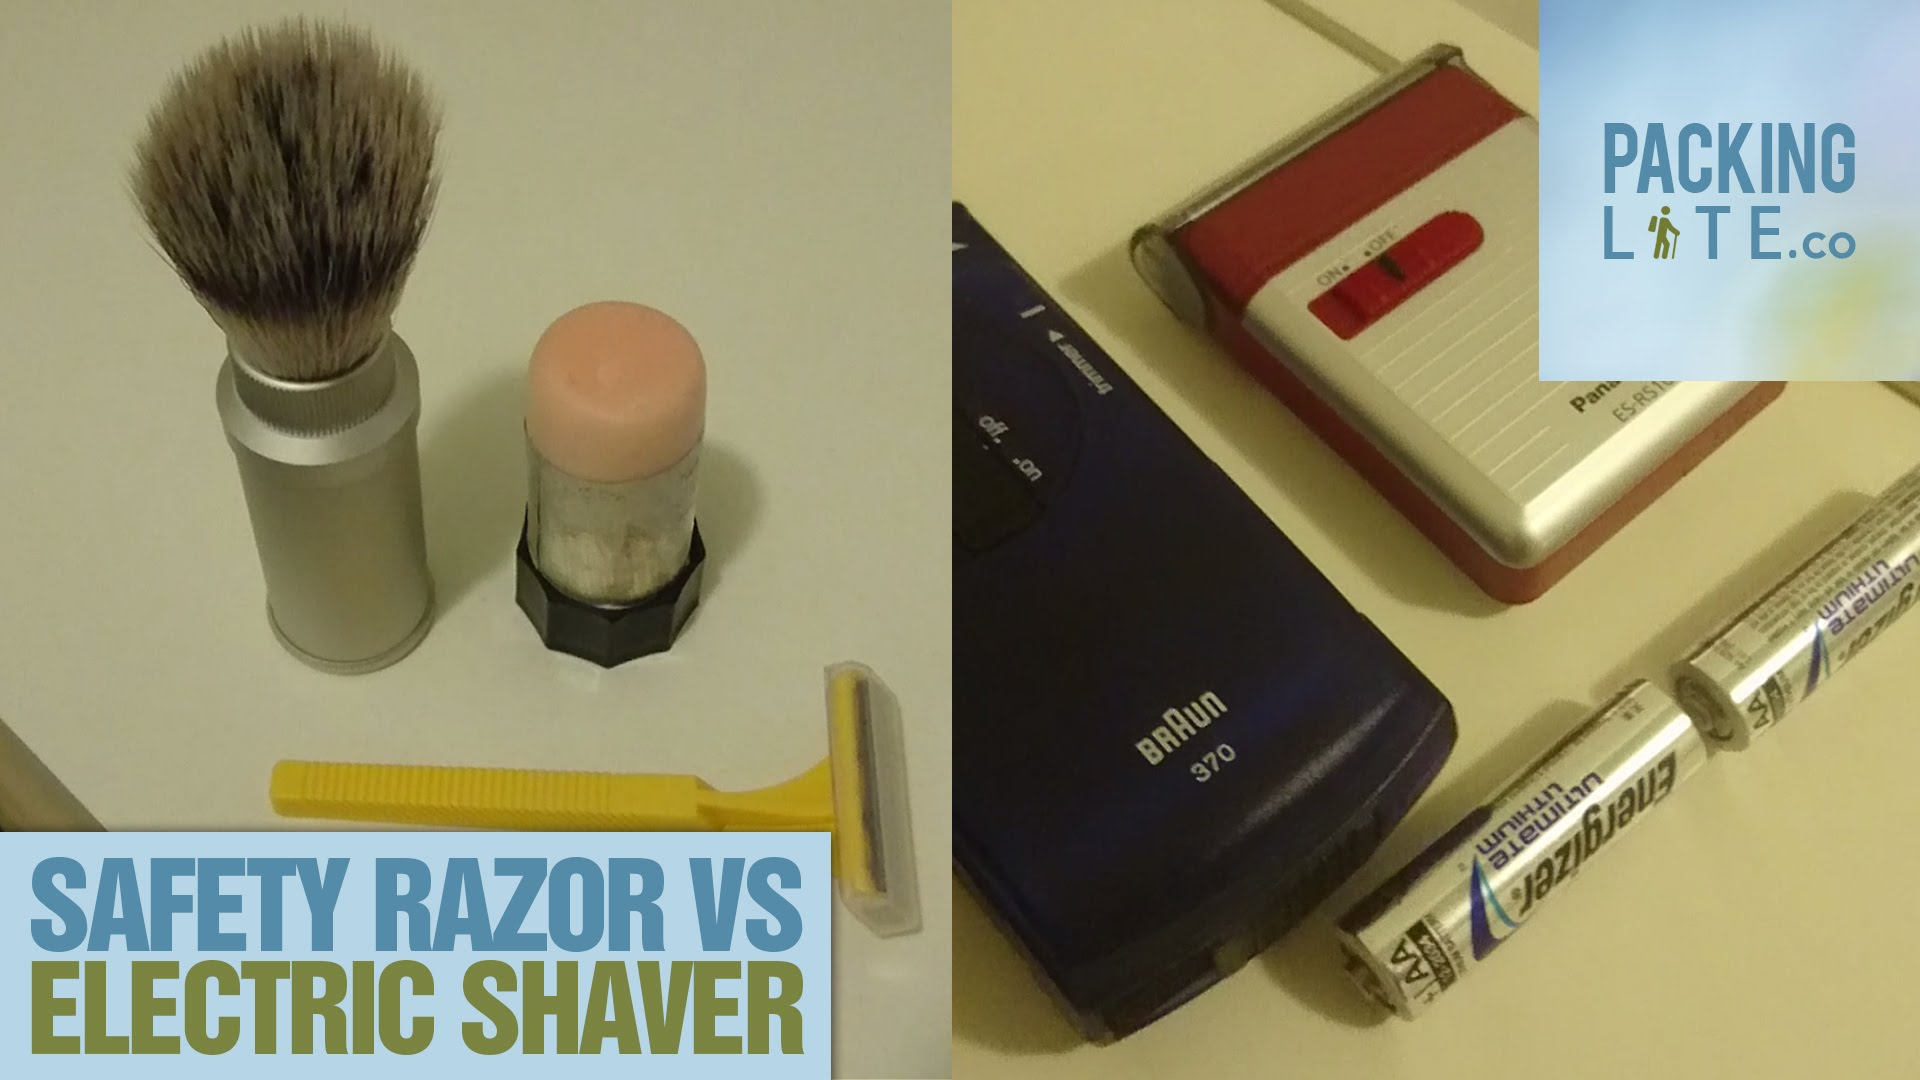 Travelling-with-a-safety-razor-vs-electric-shaver